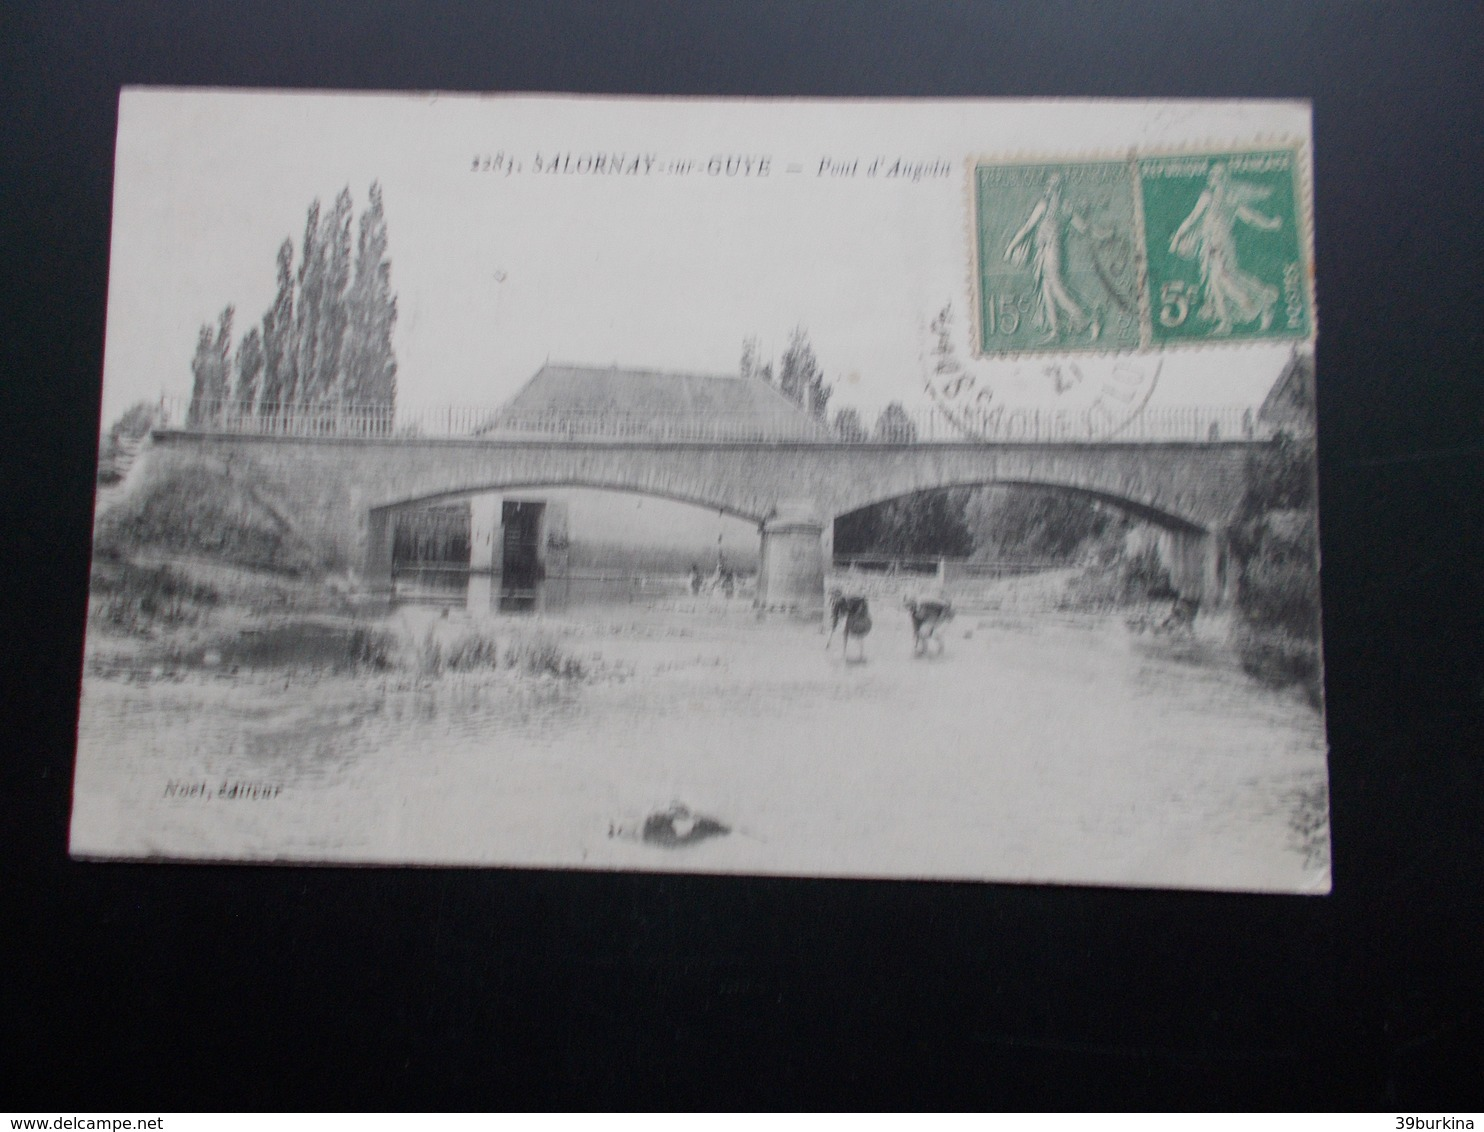 SALORNAY-sur-GUYE Pont D'Angoin 1921 - Other Municipalities